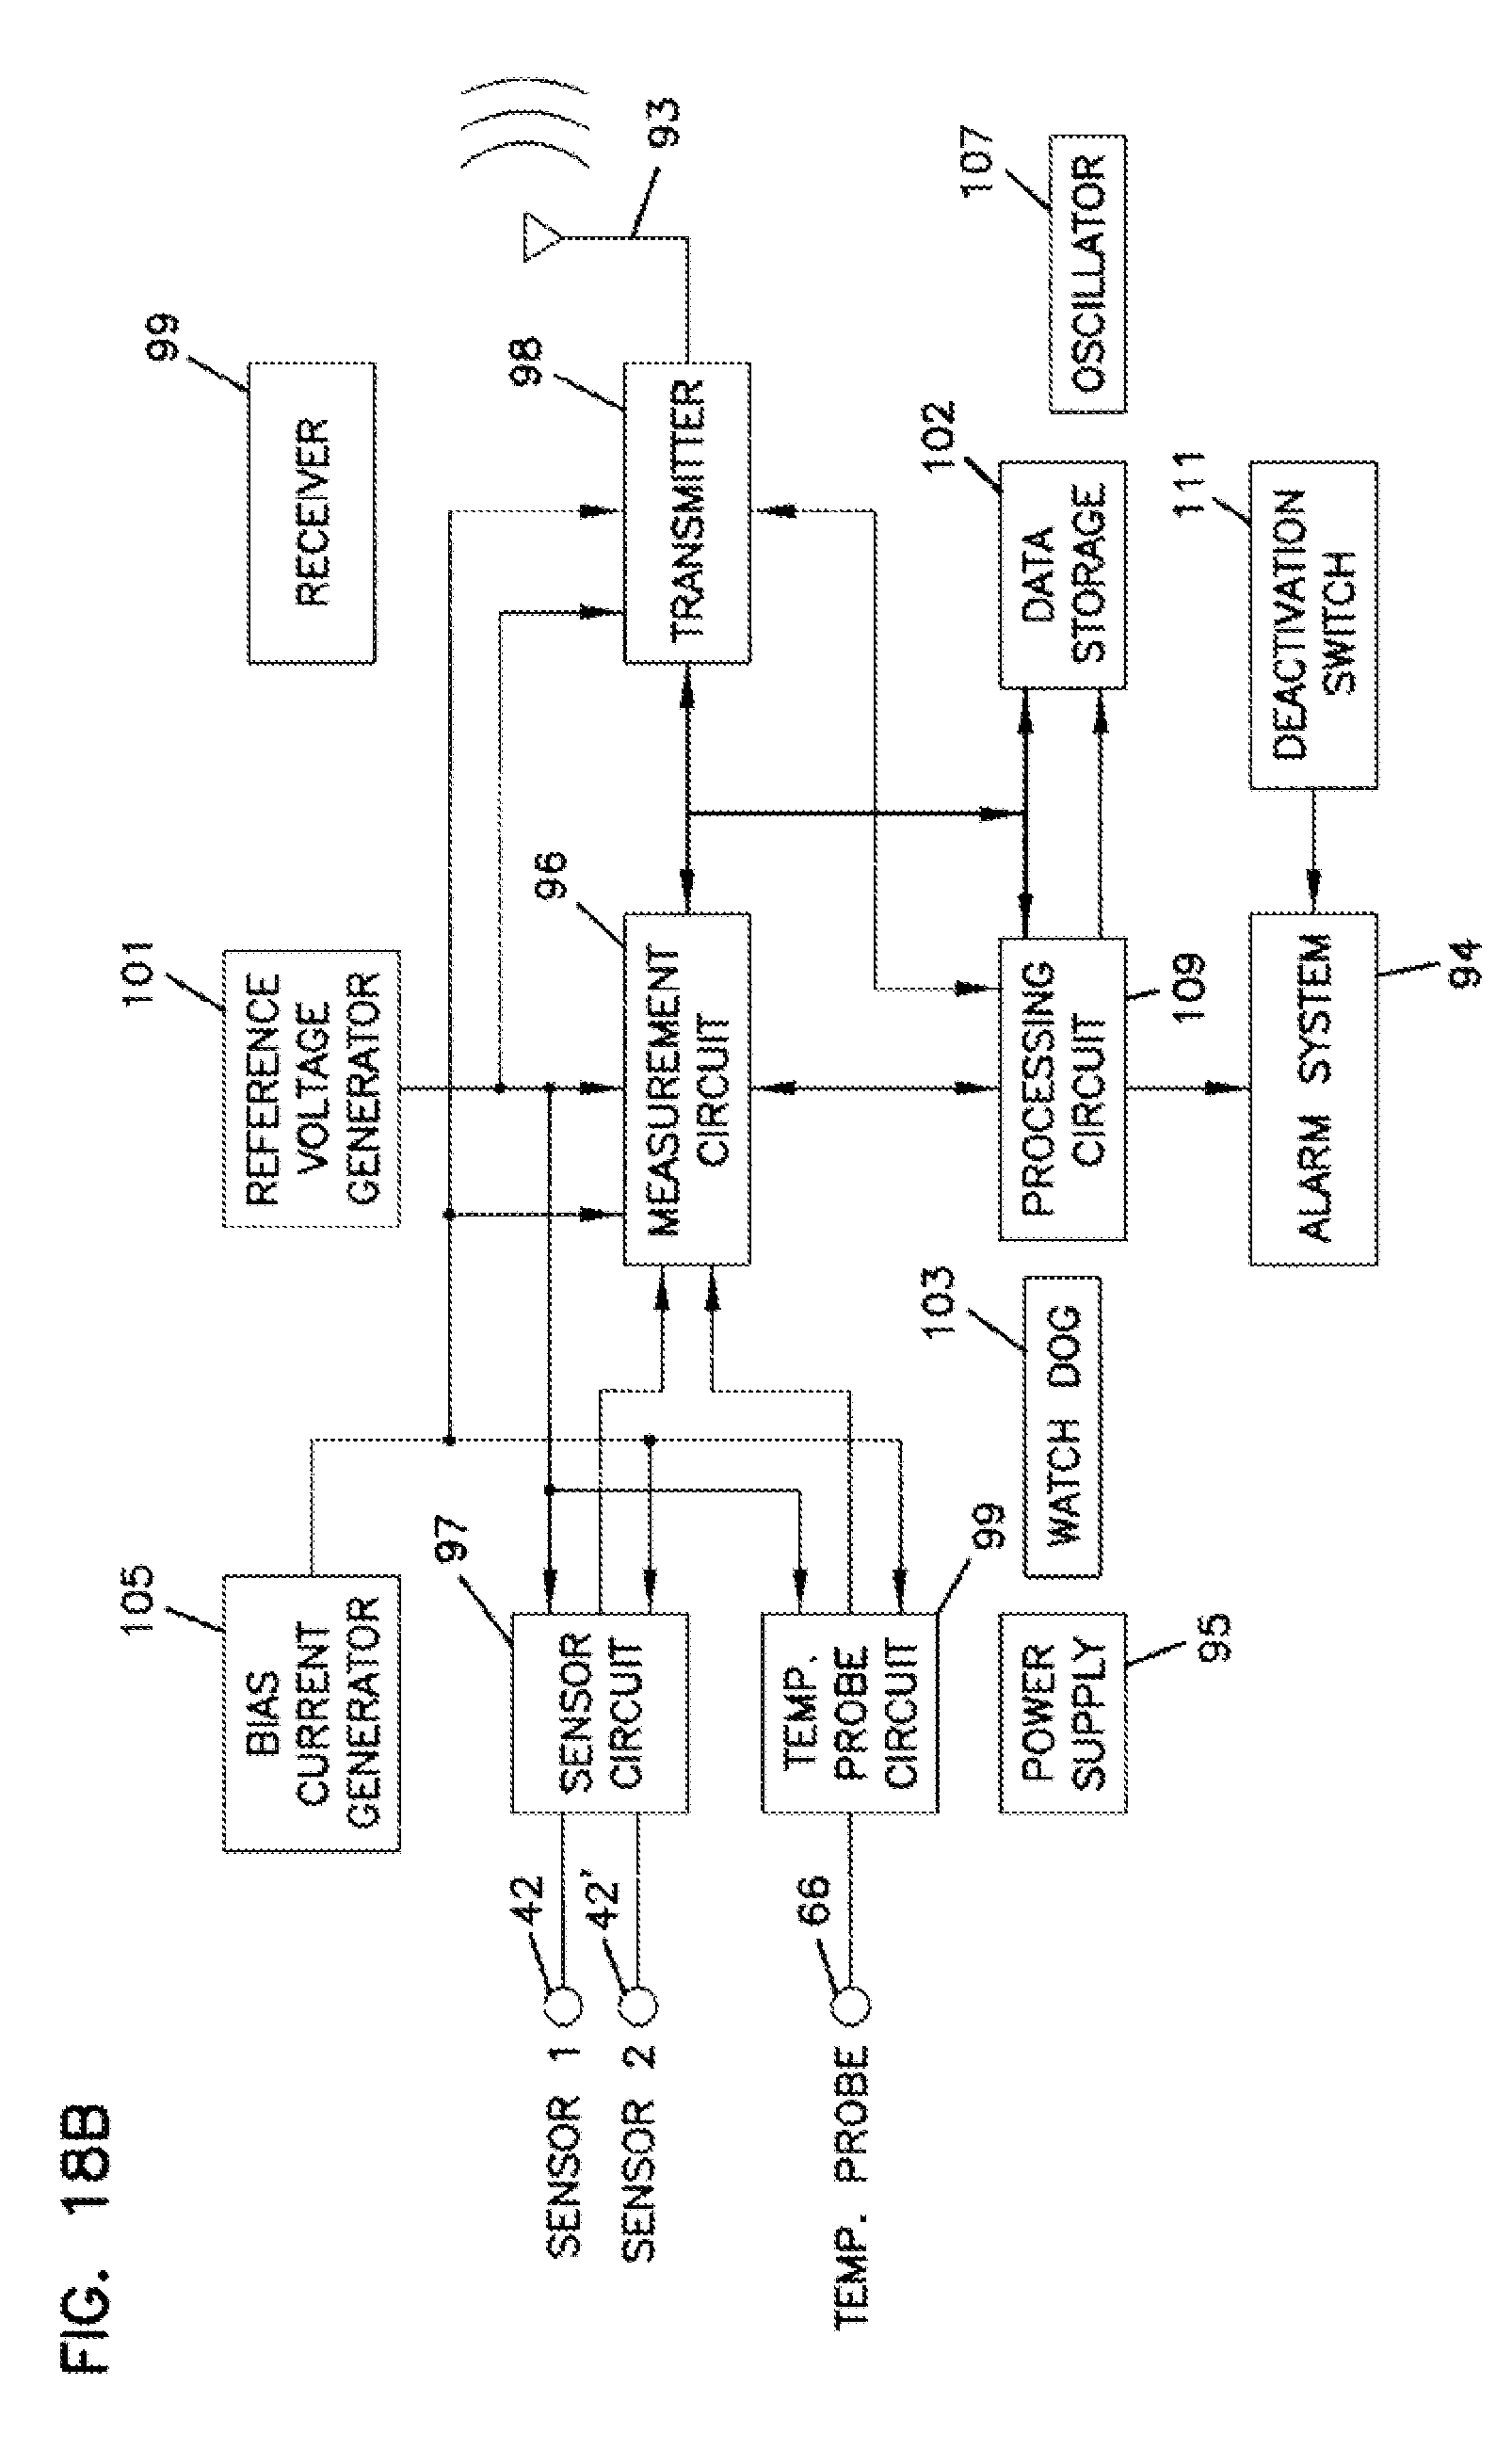 Us20070179370a1 Analyte Monitoring Device And Methods Of Use Circuitwriter Conductive Pen Caig Labs Circuit Writer Solder Google Patents